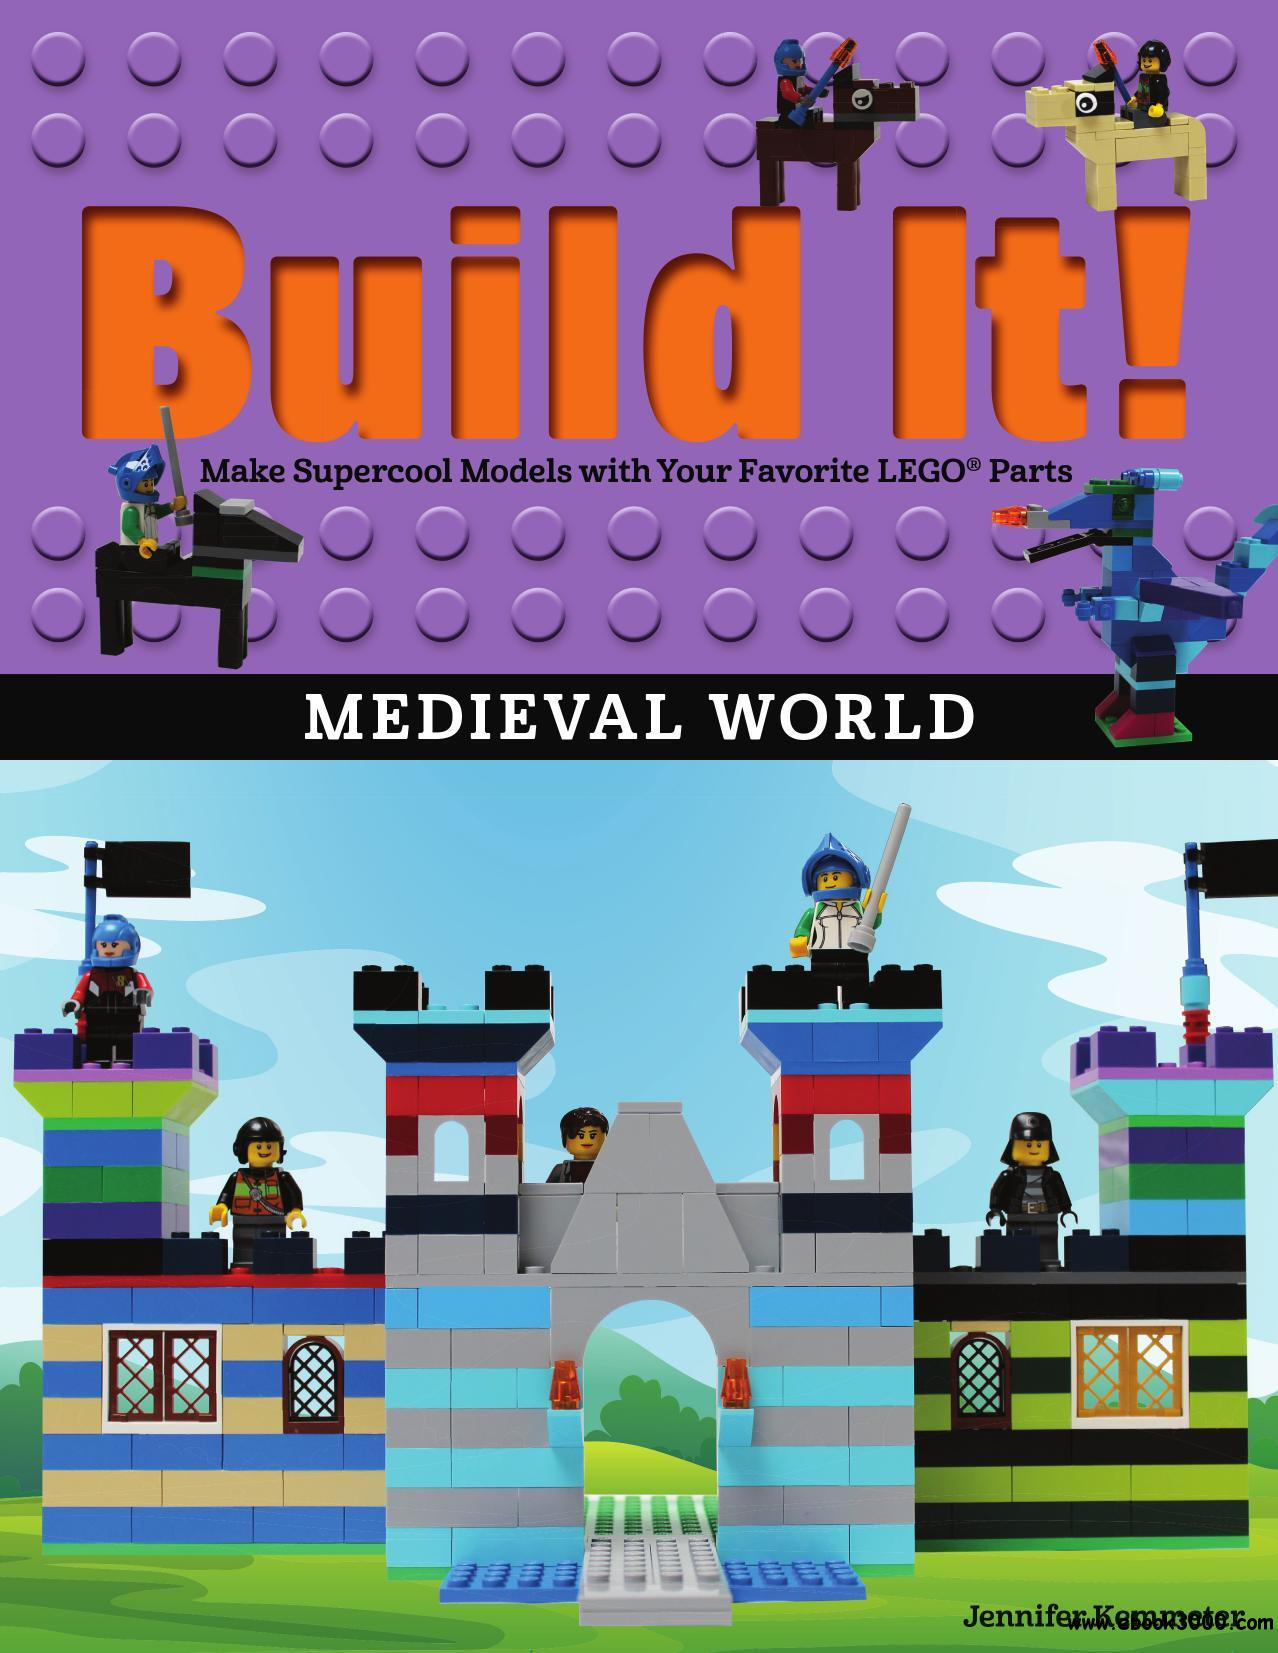 Build It! Medieval World: Make Supercool Models with Your Favorite LEGO? Parts (Brick Books)